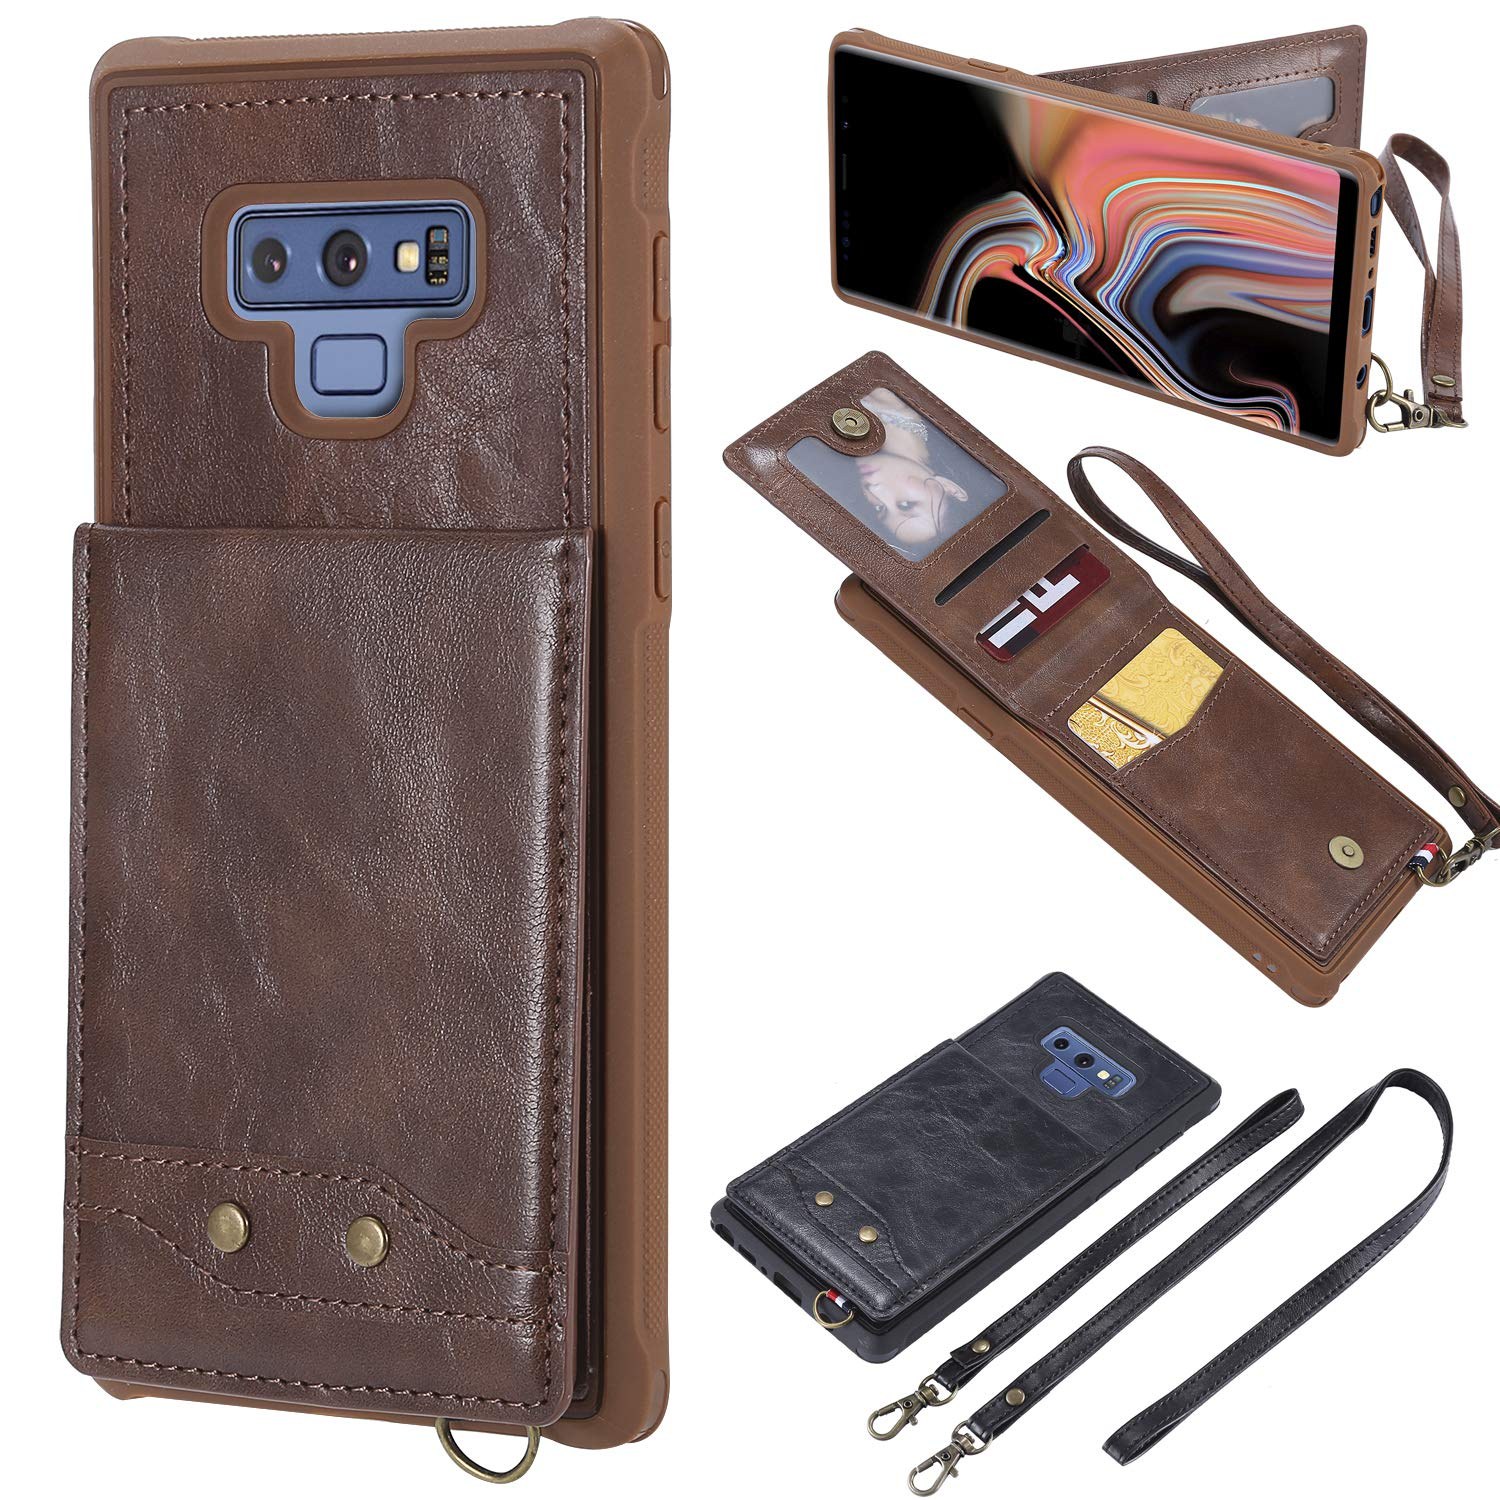 Shinyzone Leather Back Case for Samsung Galaxy Note 9,Removable Wrist Strap & Neck Strap Metal Buckle Premium PU Flip Wallet Case with Card Holder Cover for Samsung Galaxy Note 9,Coffee